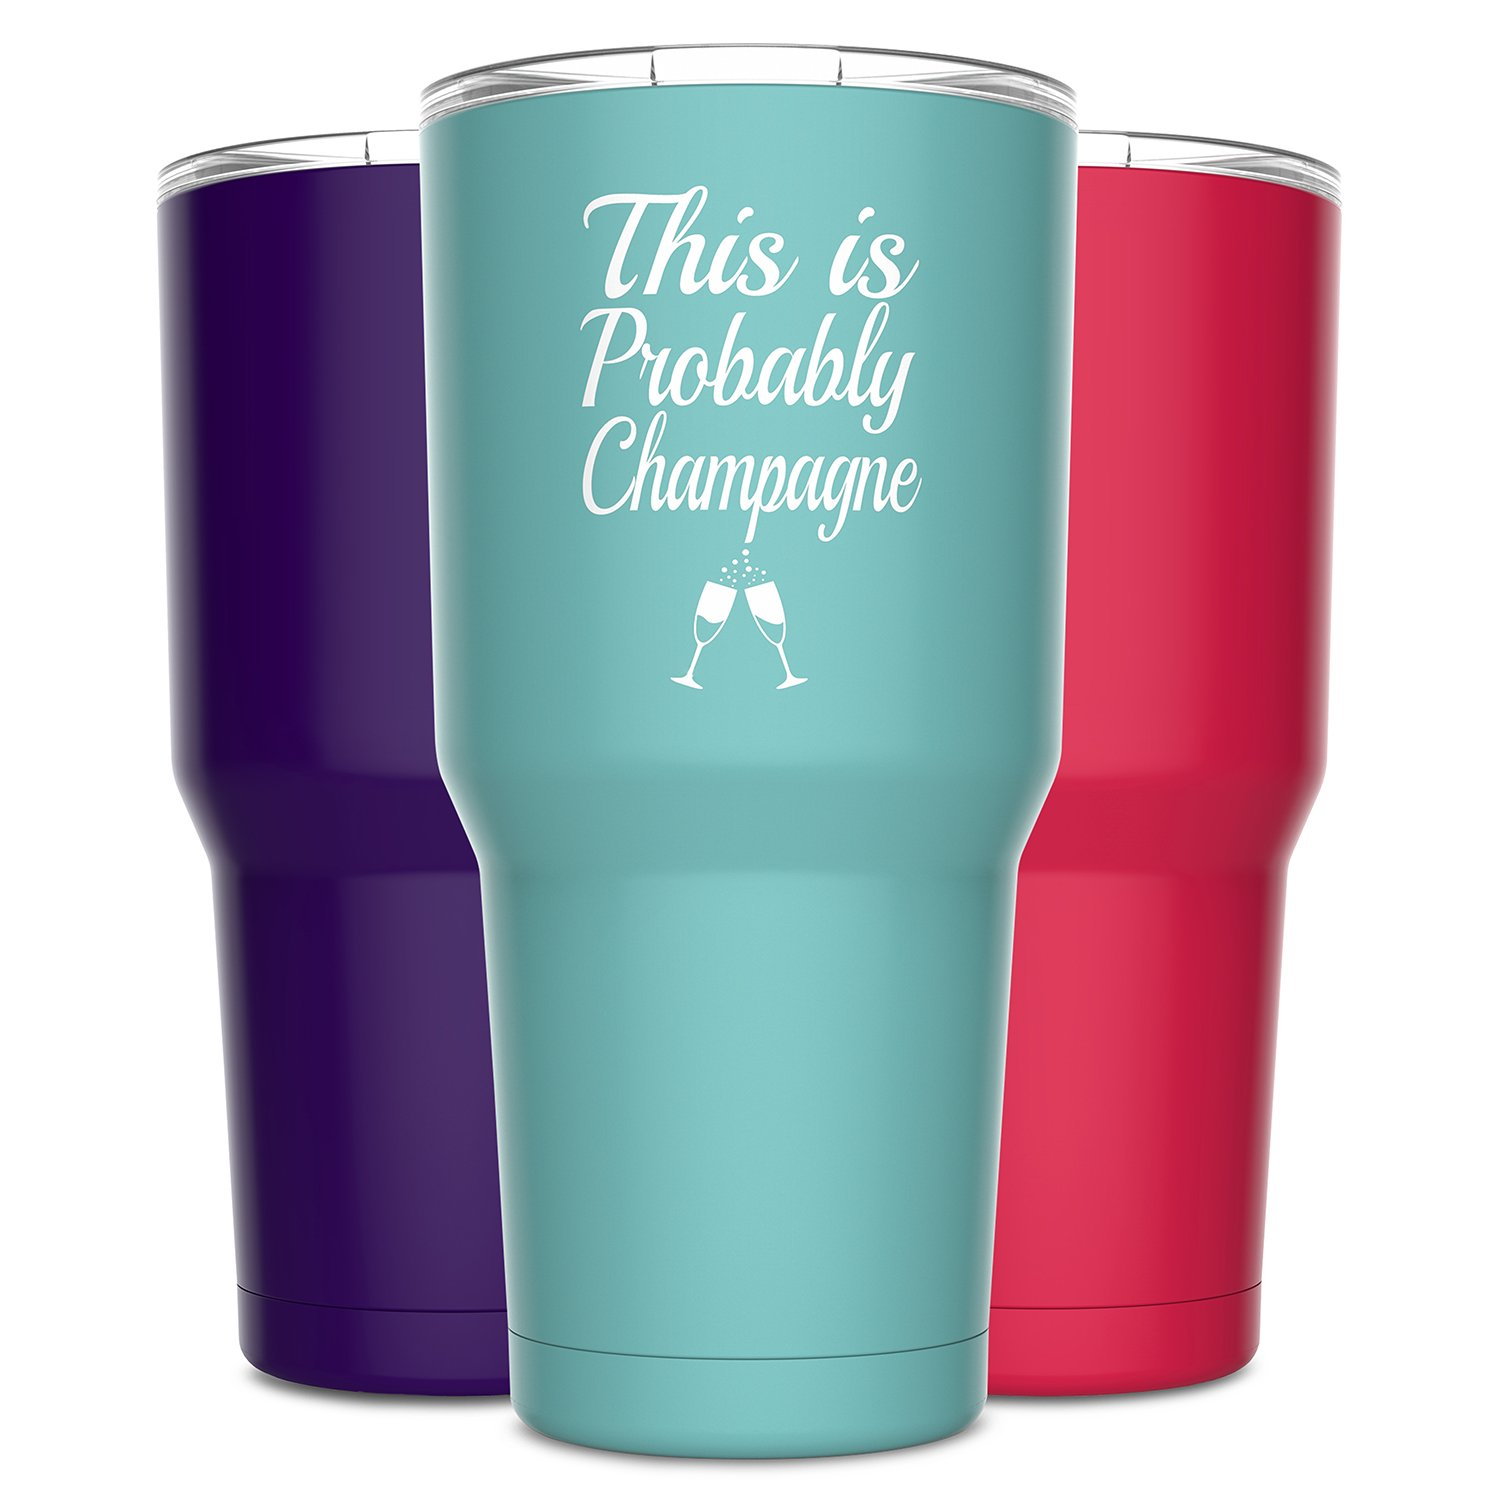 Alcee This is Probably Champagne Stainless Steel Funny Tumbler with Lid - Large 30 oz Vacuum Insulated Travel Mug - Funny Tumblers for Hot Coffee and Cold Drinks - Premium Gifts Women Men Mom Sister